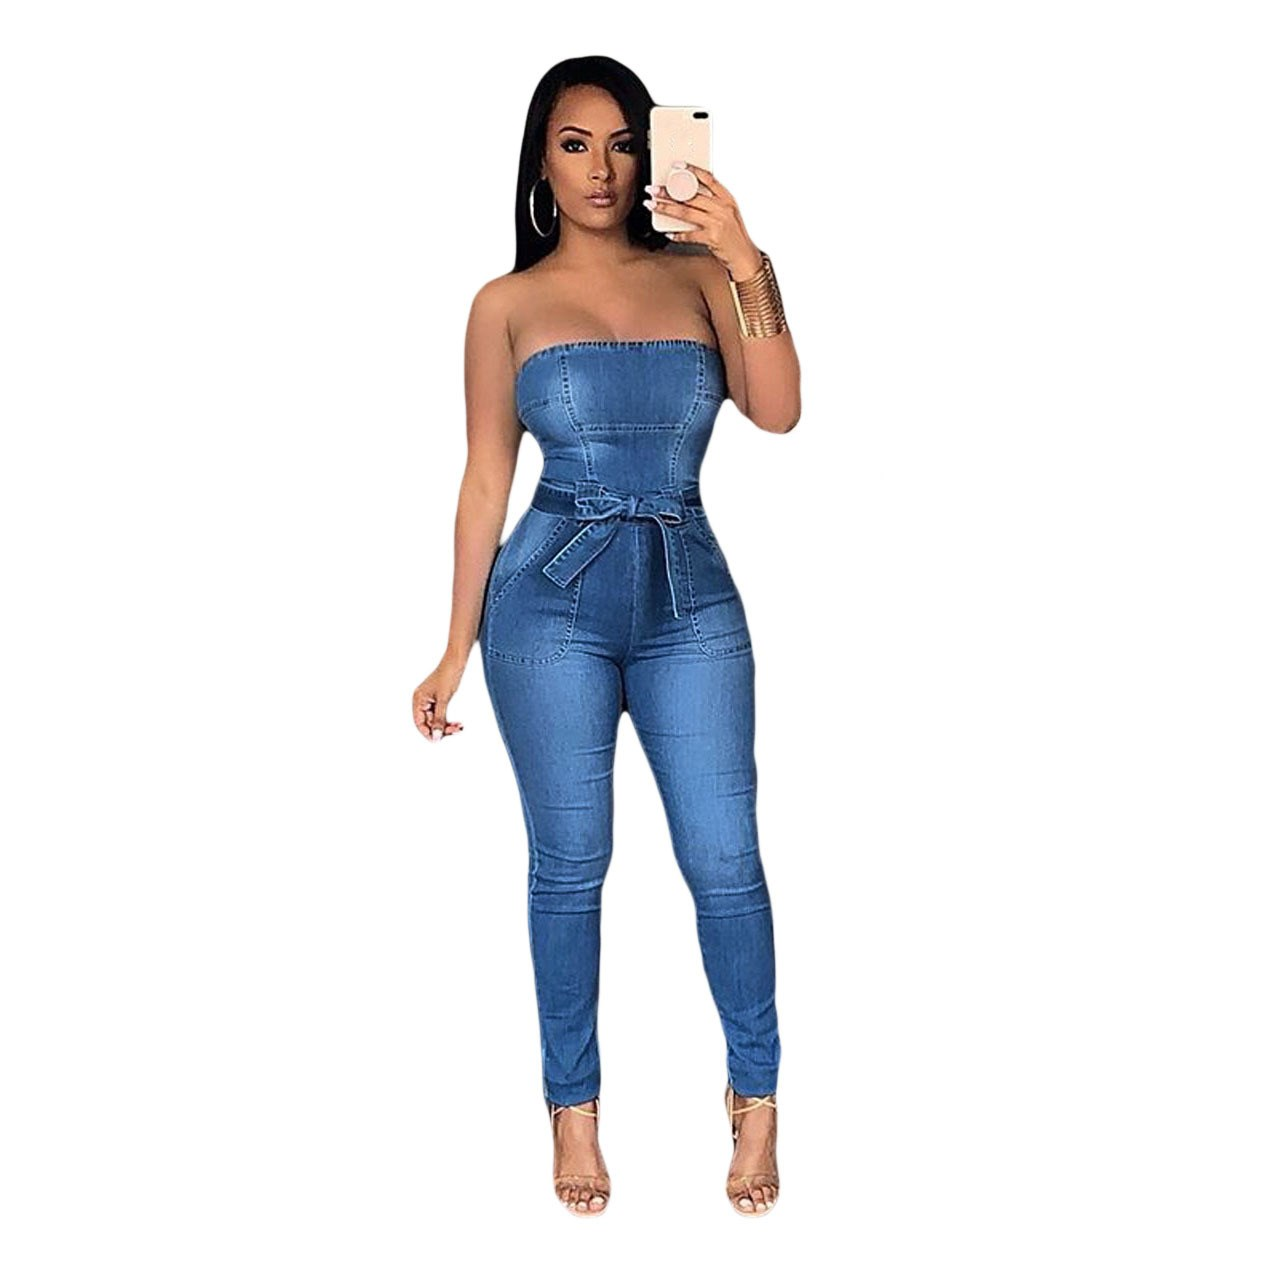 Women Bowknot Denim Jumpsuit Sleeveless Slim Summer Jumpsuit High Waist Casual Playsuit in Jumpsuits from Women 39 s Clothing